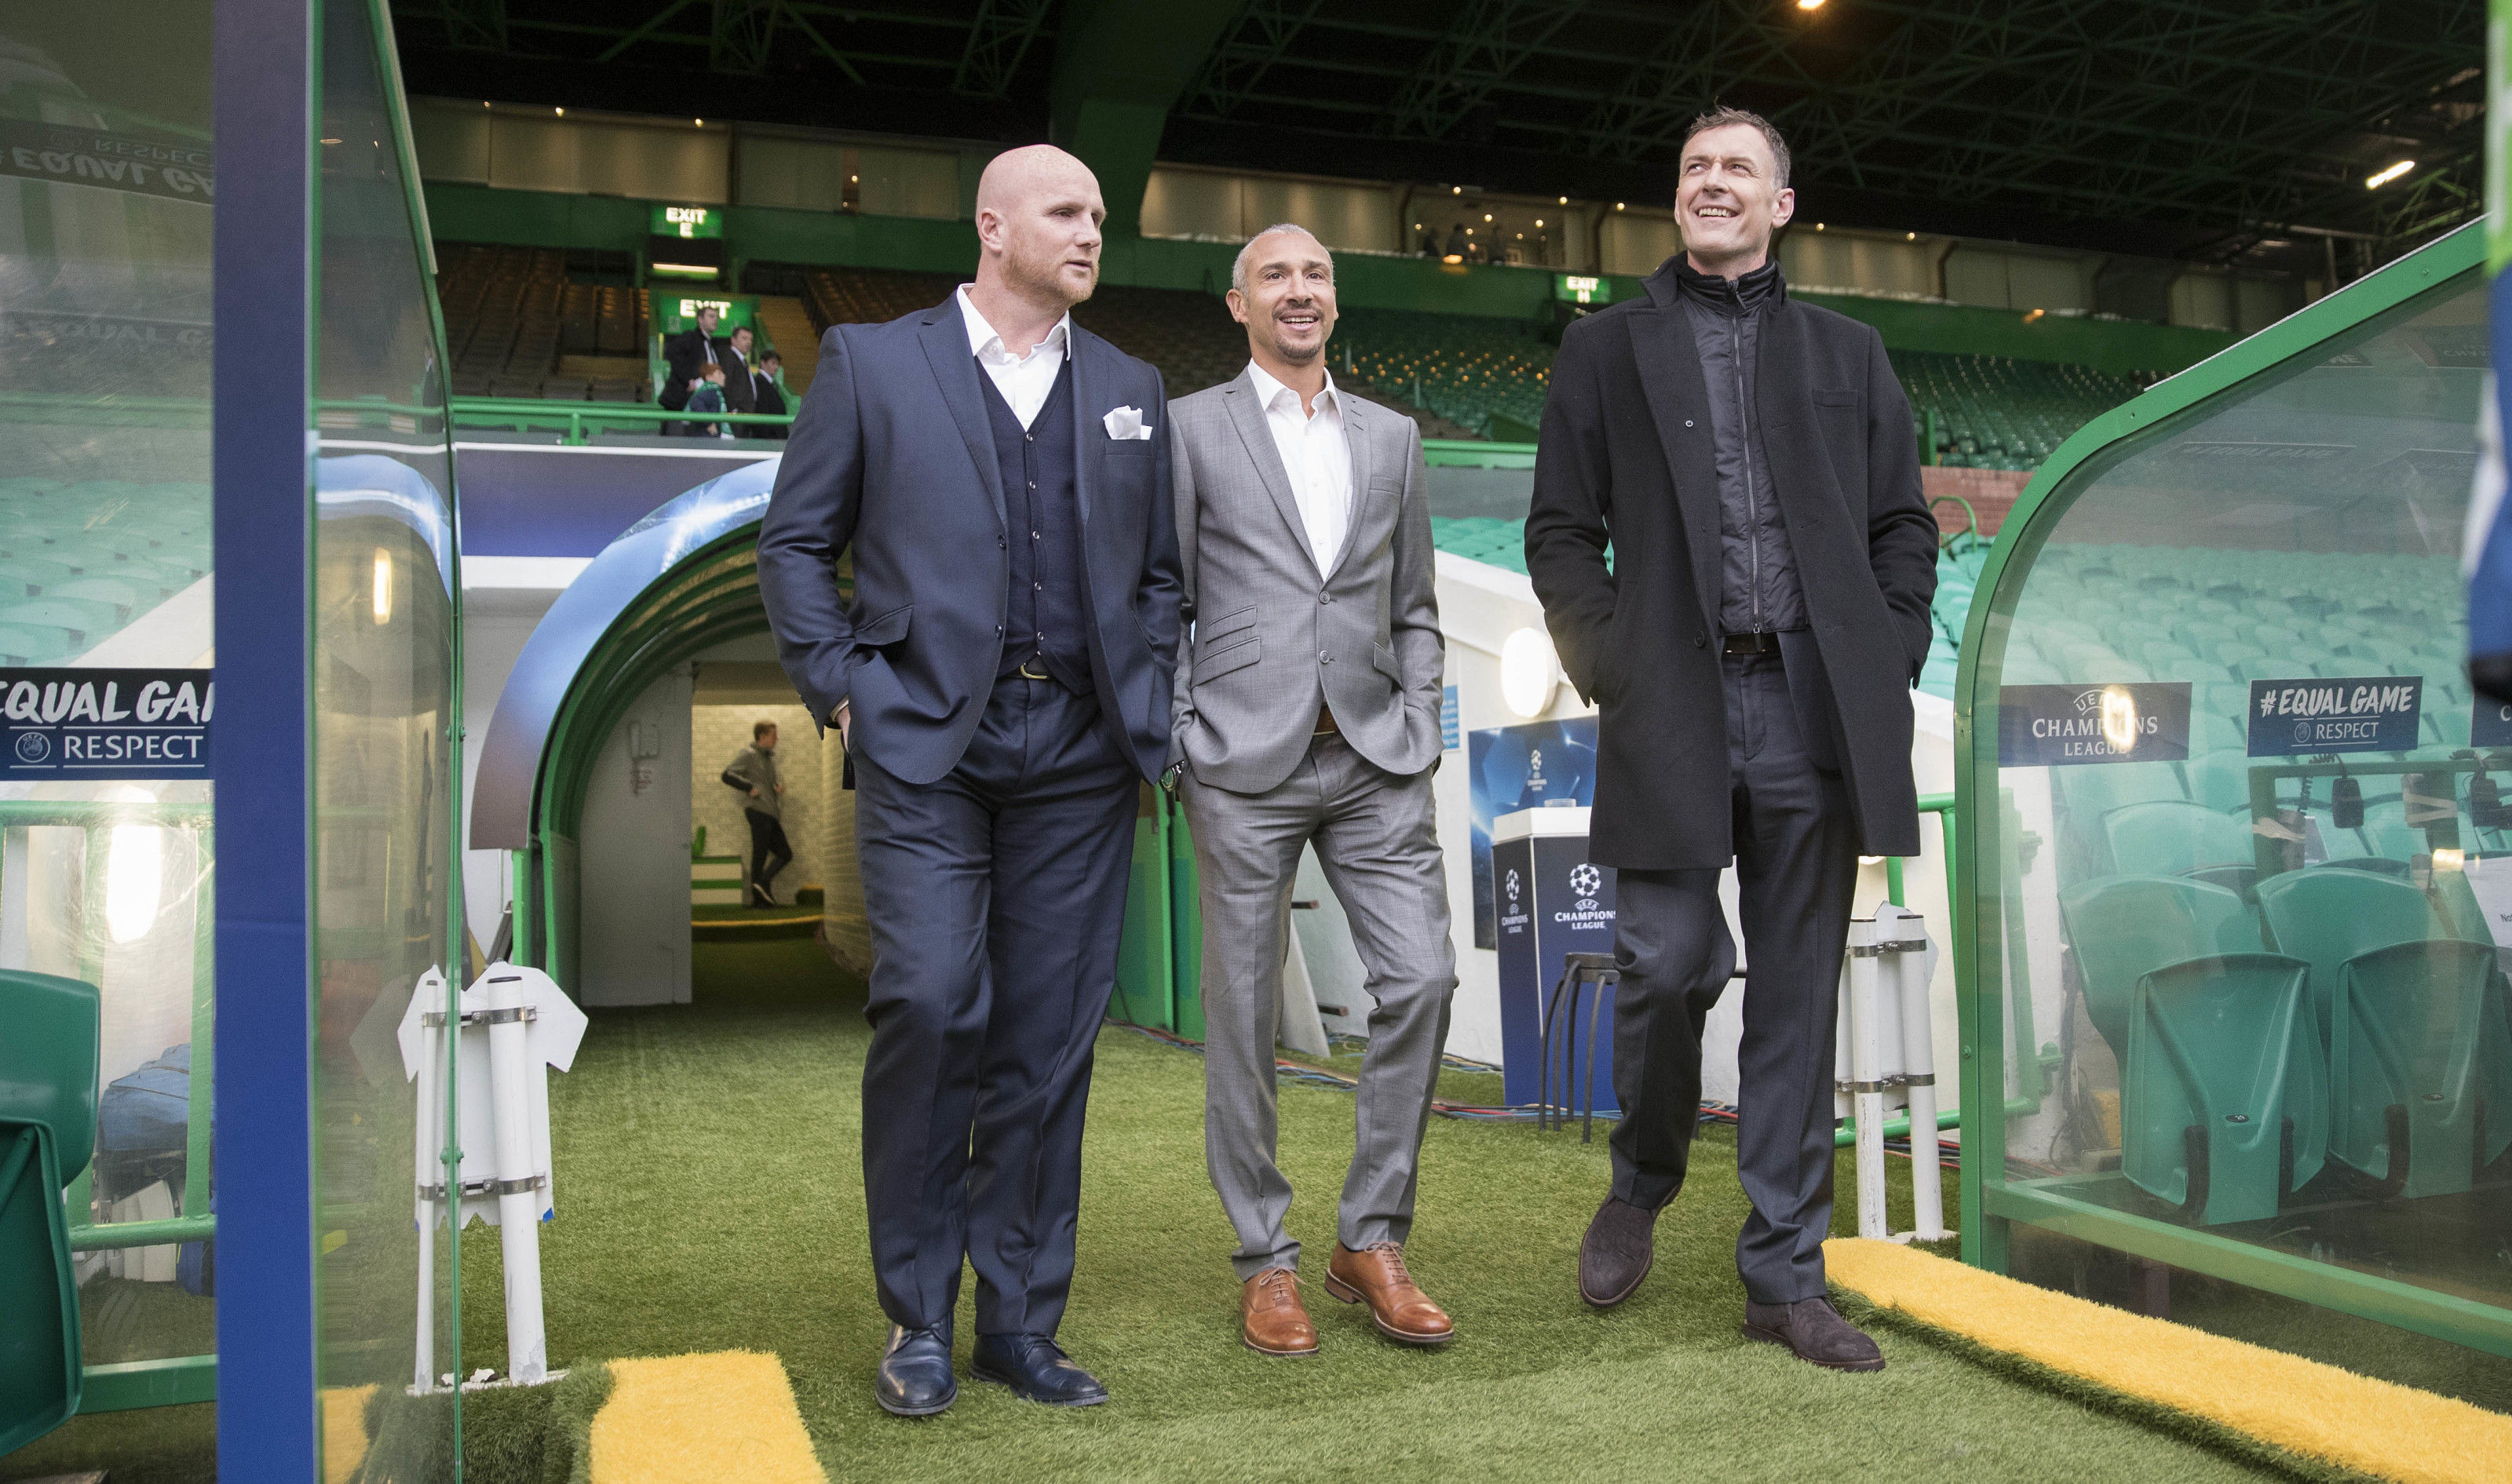 'Shameful' – Chris Sutton hits out after Celtic controversy